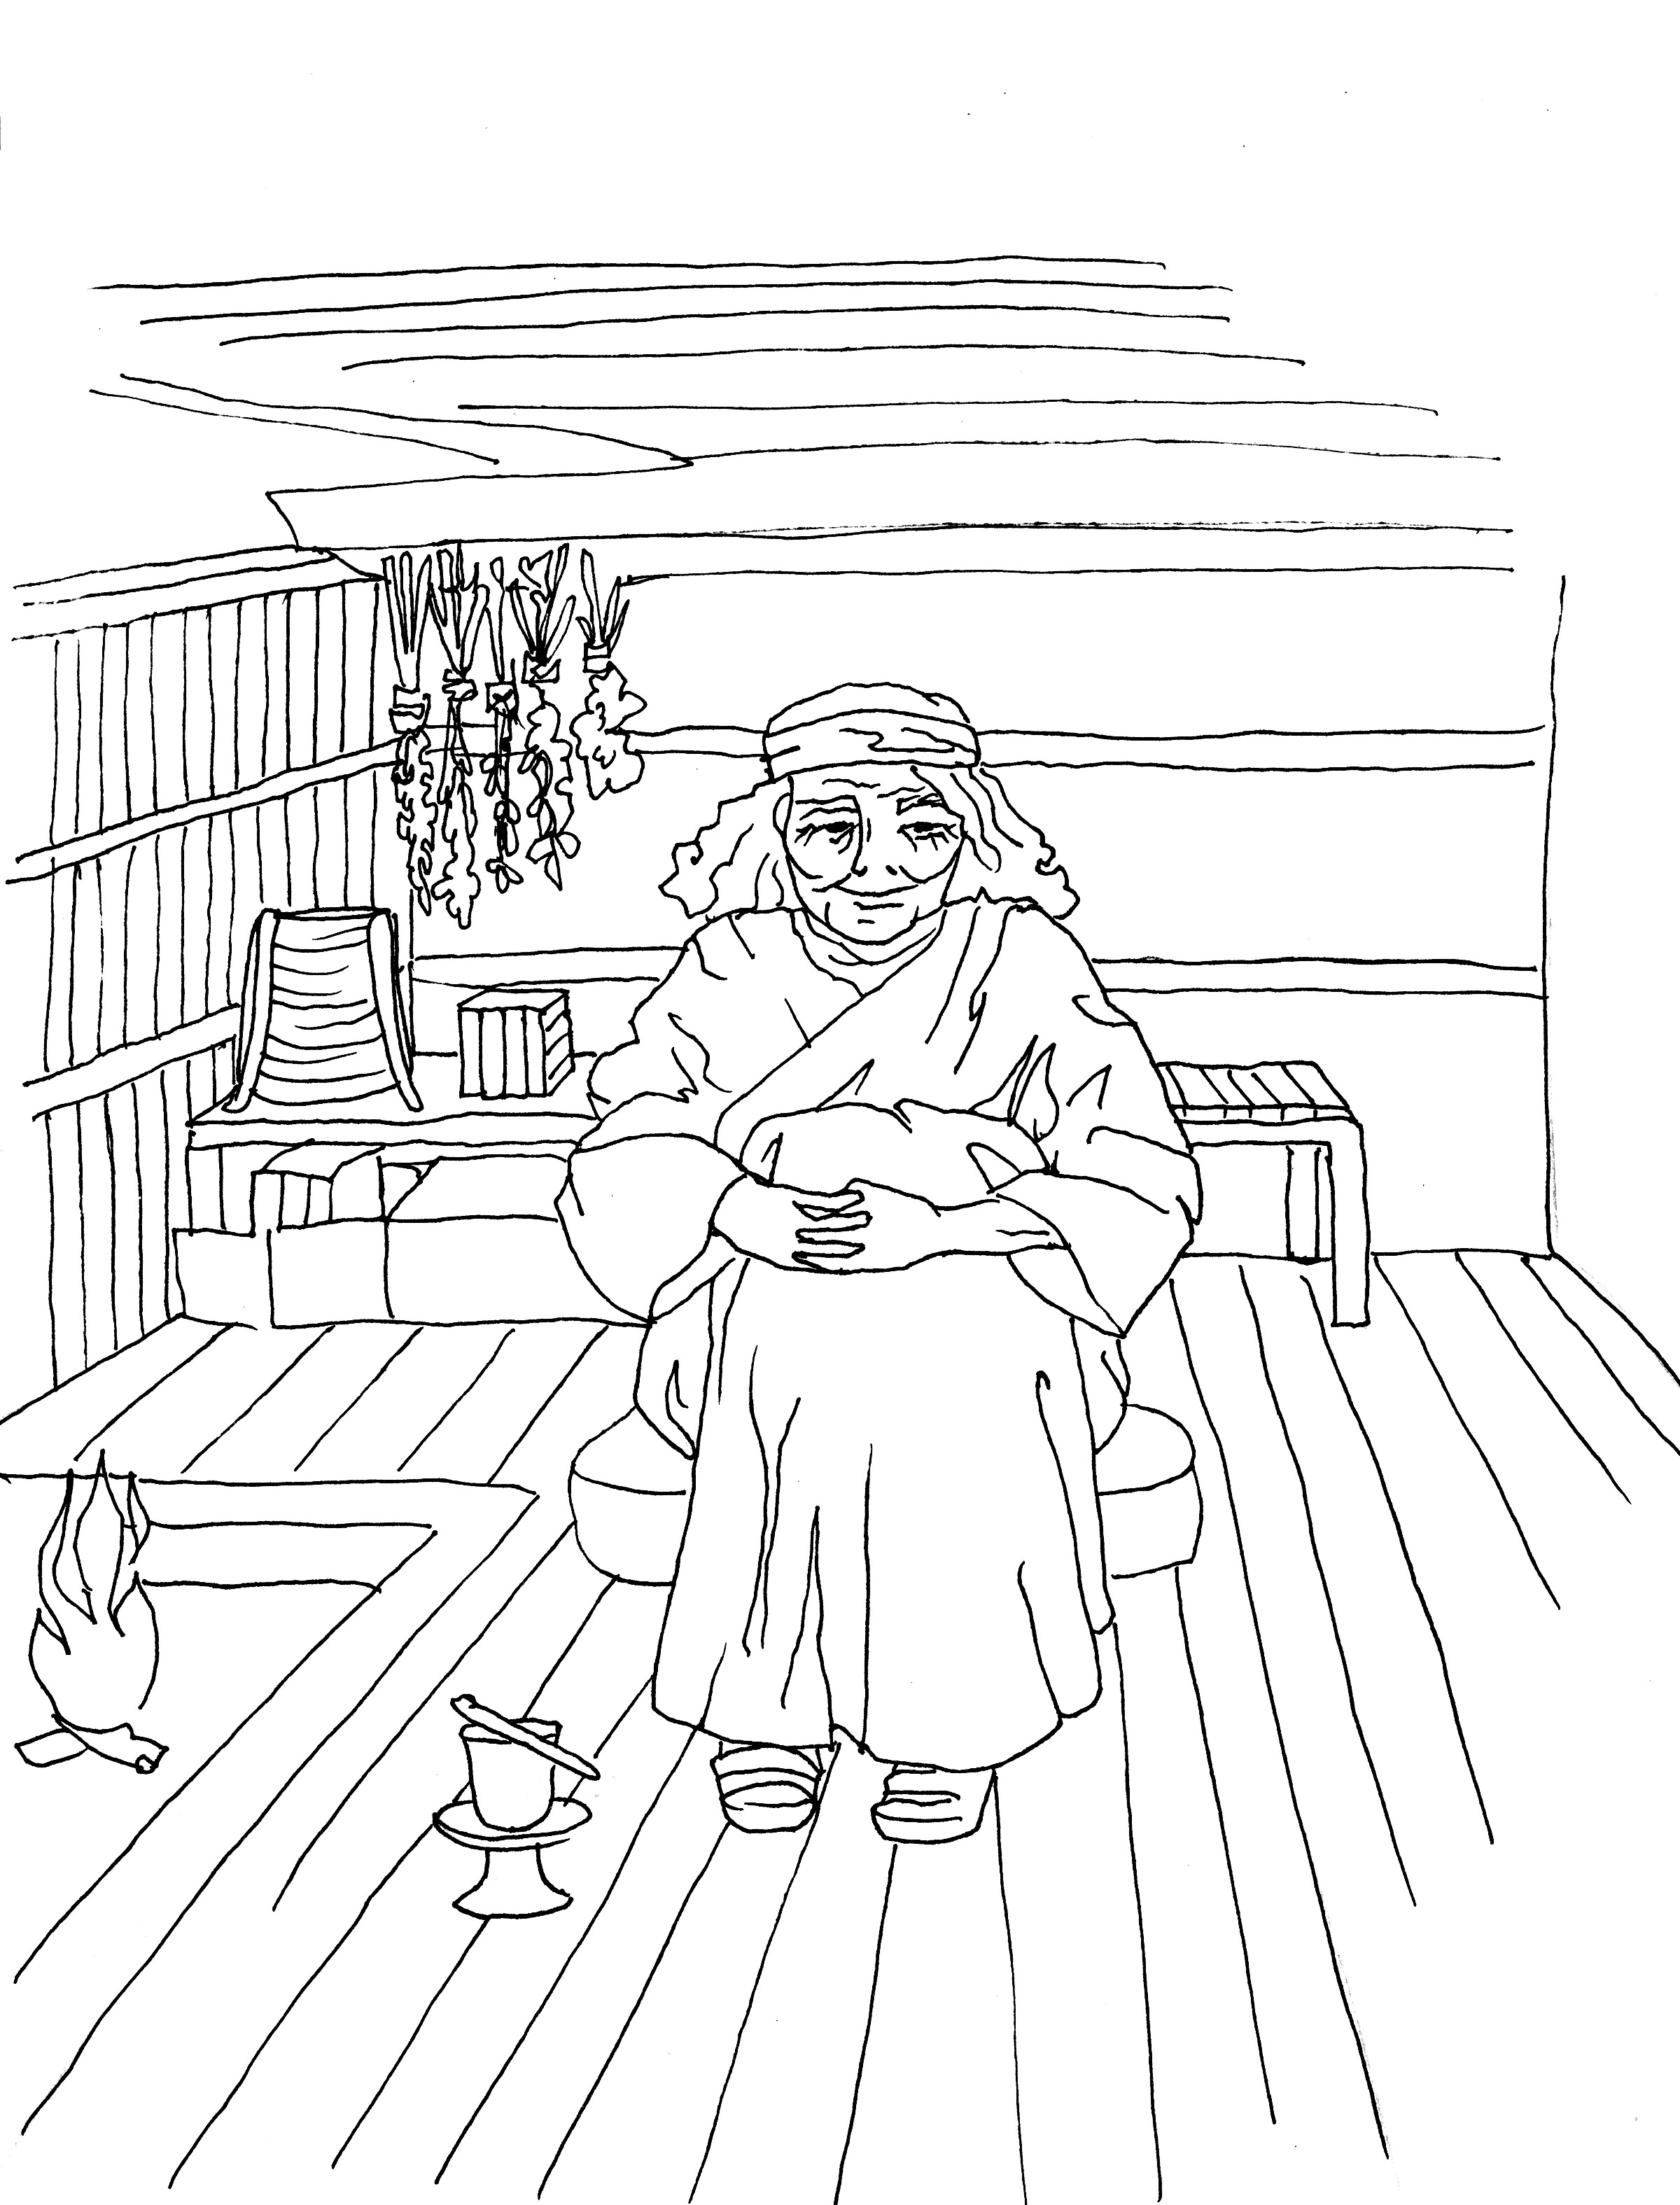 Free coloring pages of jehoshaphat for King jehoshaphat coloring page